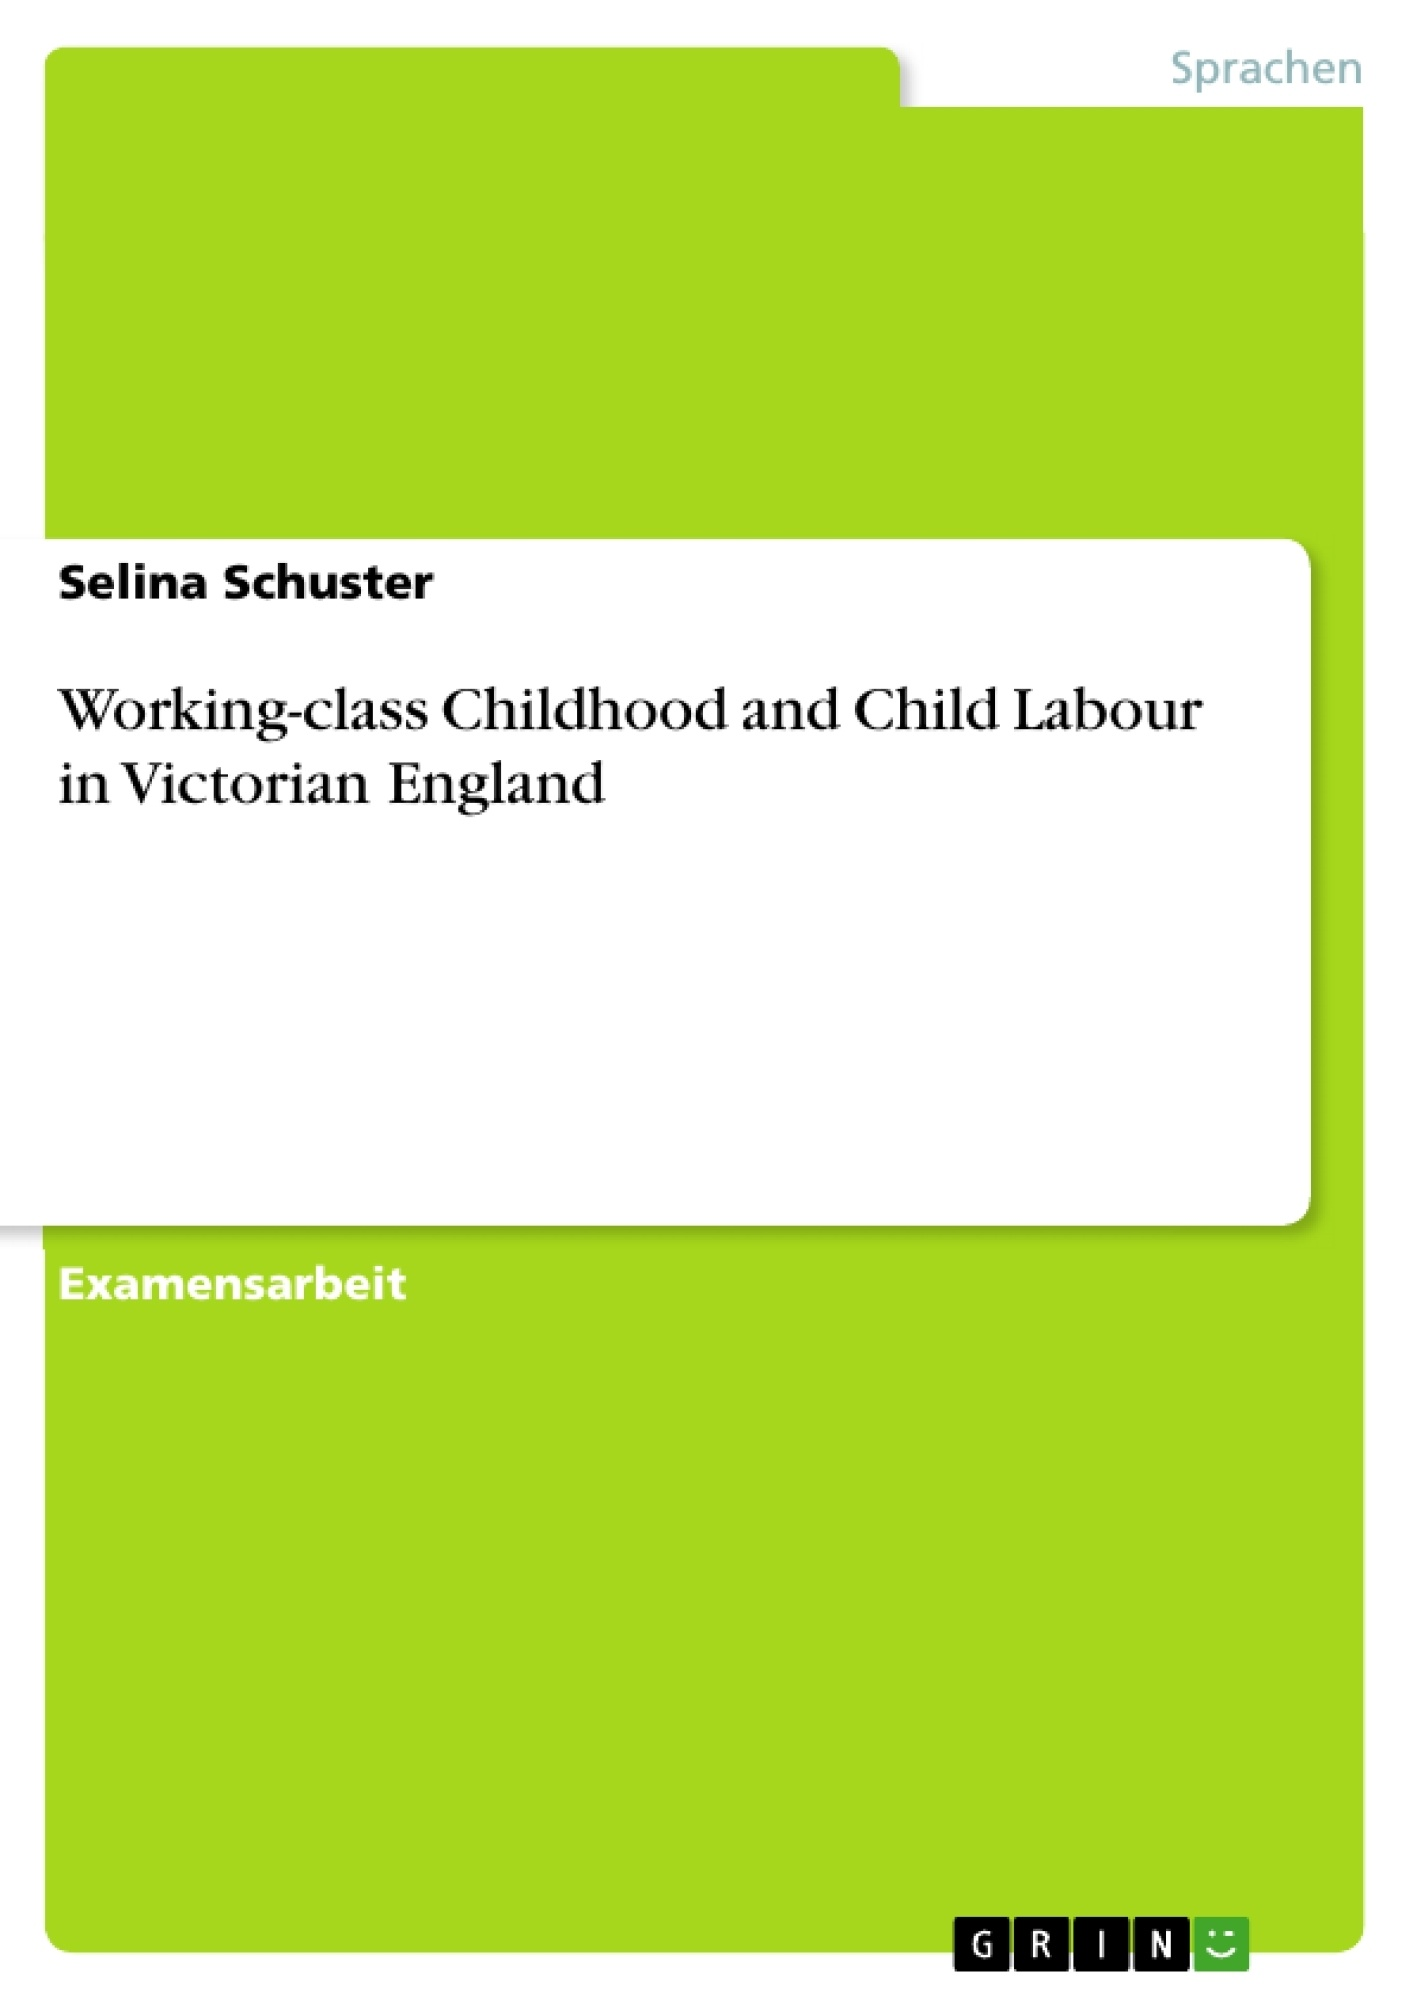 Titel: Working-class Childhood and Child Labour in Victorian England